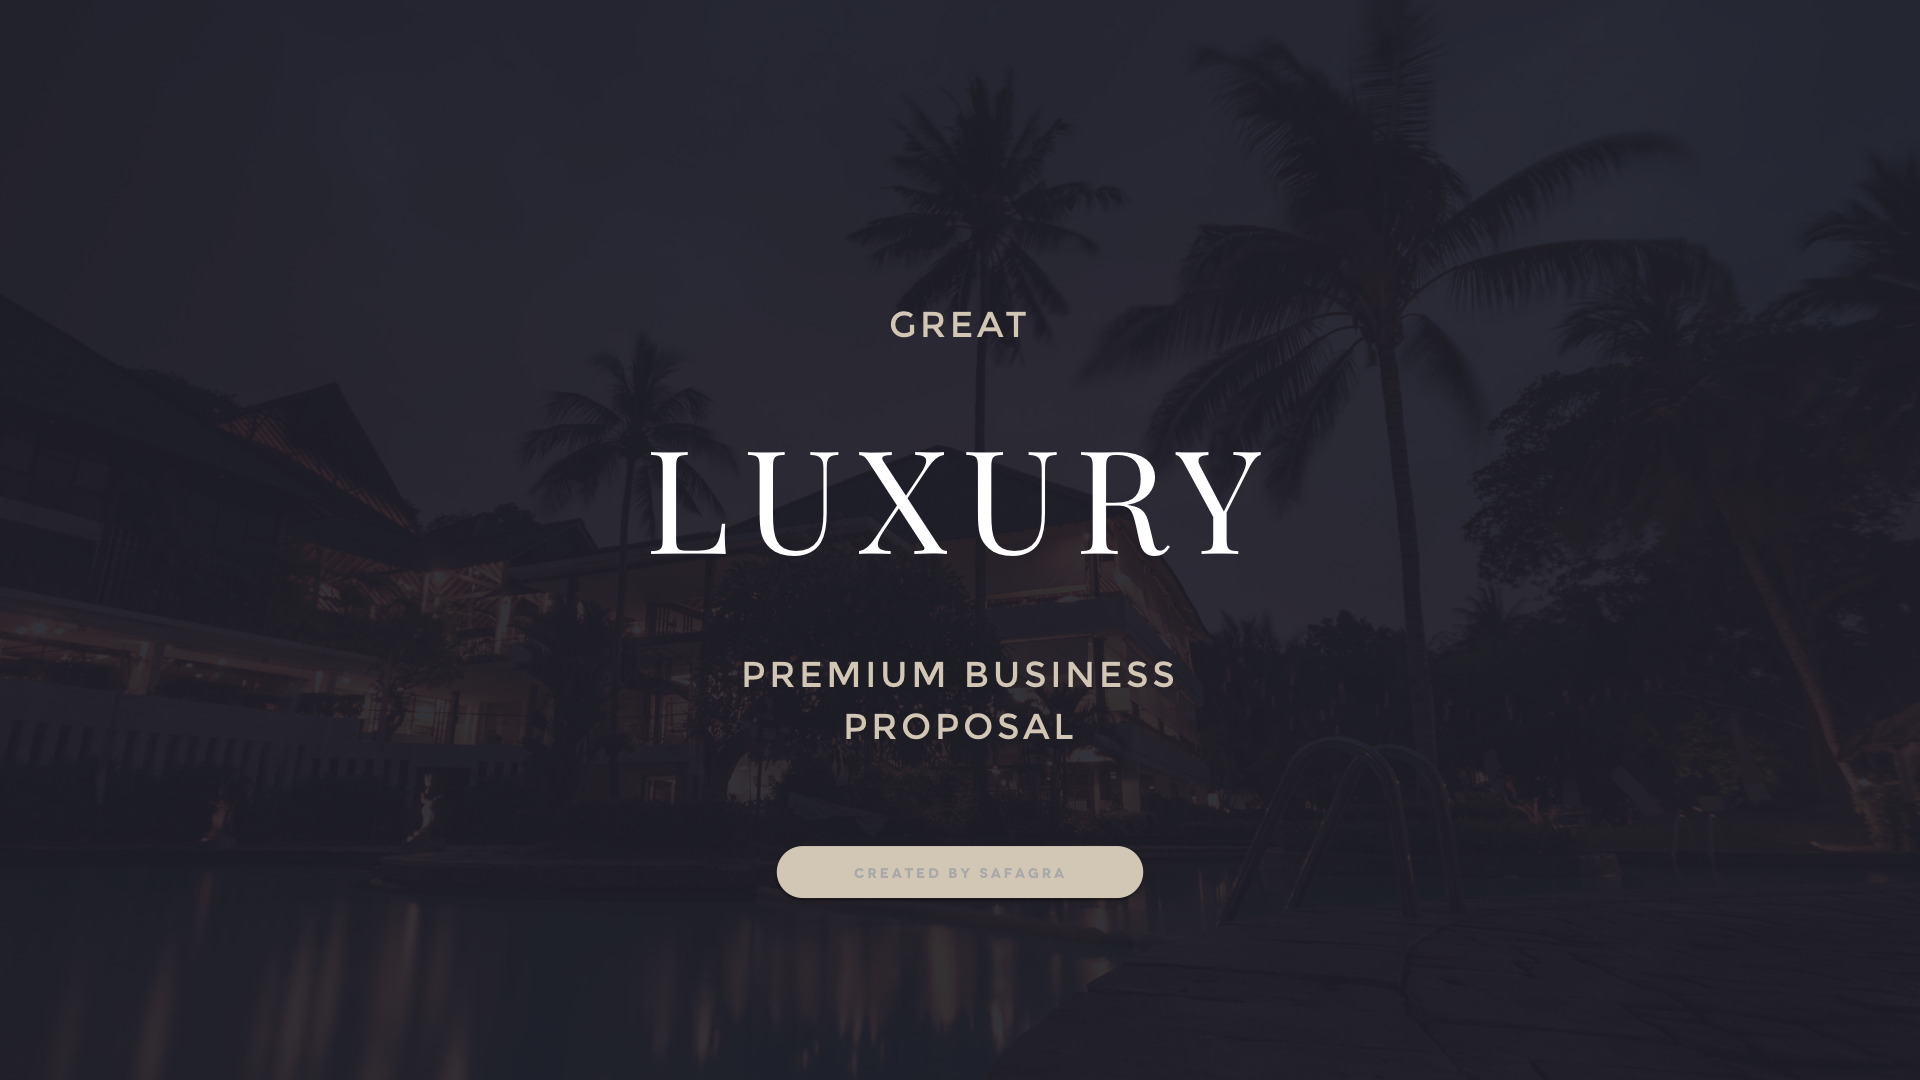 great luxury premium business proposal powerpoint template by safagra. Black Bedroom Furniture Sets. Home Design Ideas